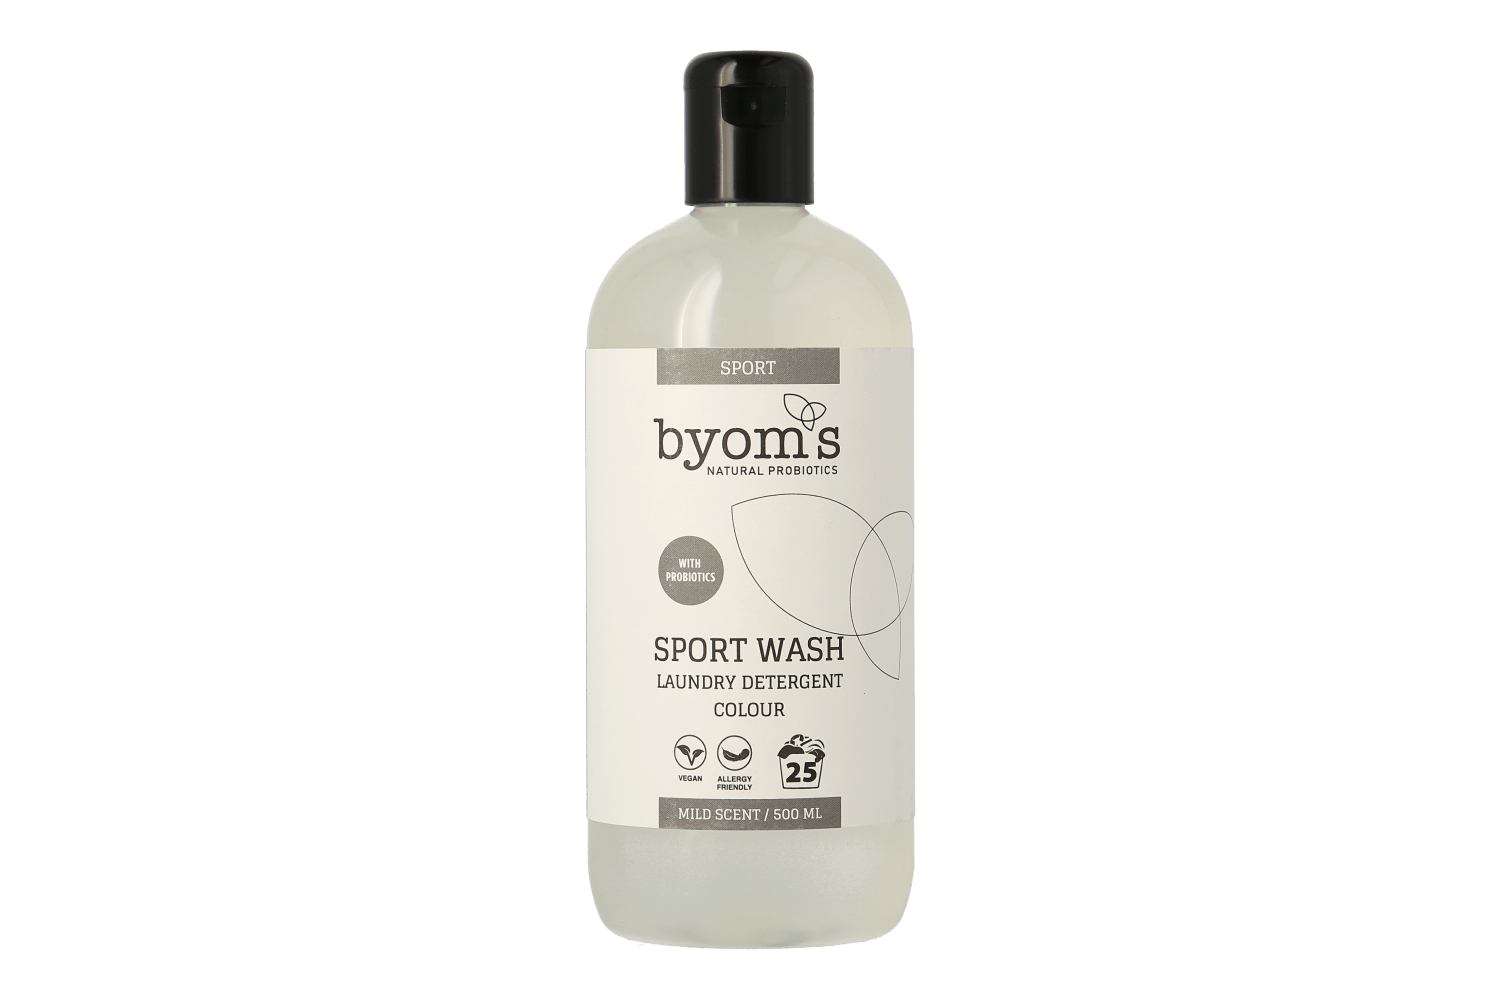 byoms sport wash 500 ml - probiotika vaskemiddel, Colour thumbnail